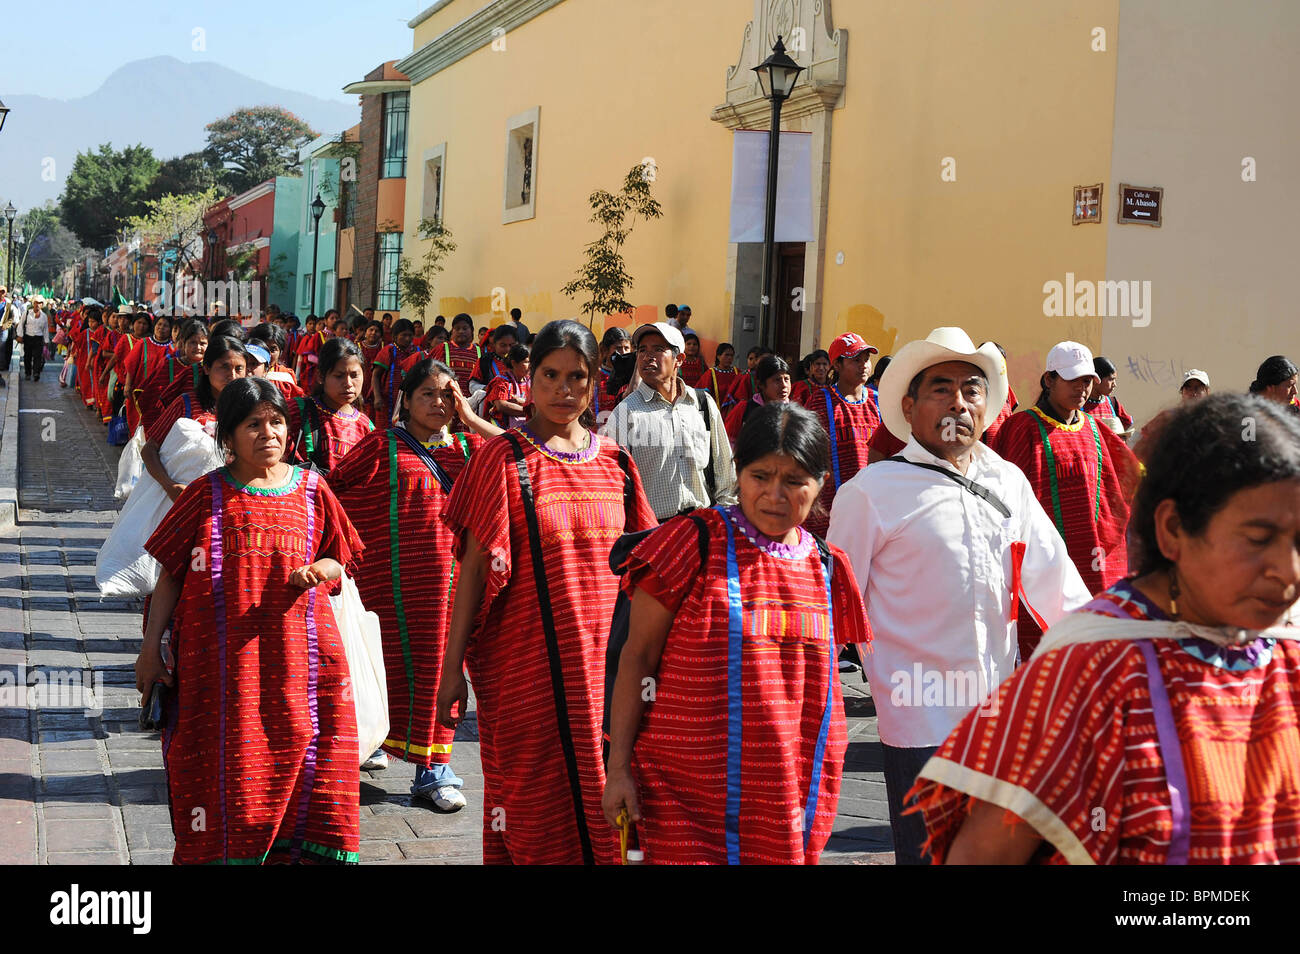 Protesters march to the Zocola in Oaxaca to demand for Government reforms and help for the poor. Mexico - Stock Image